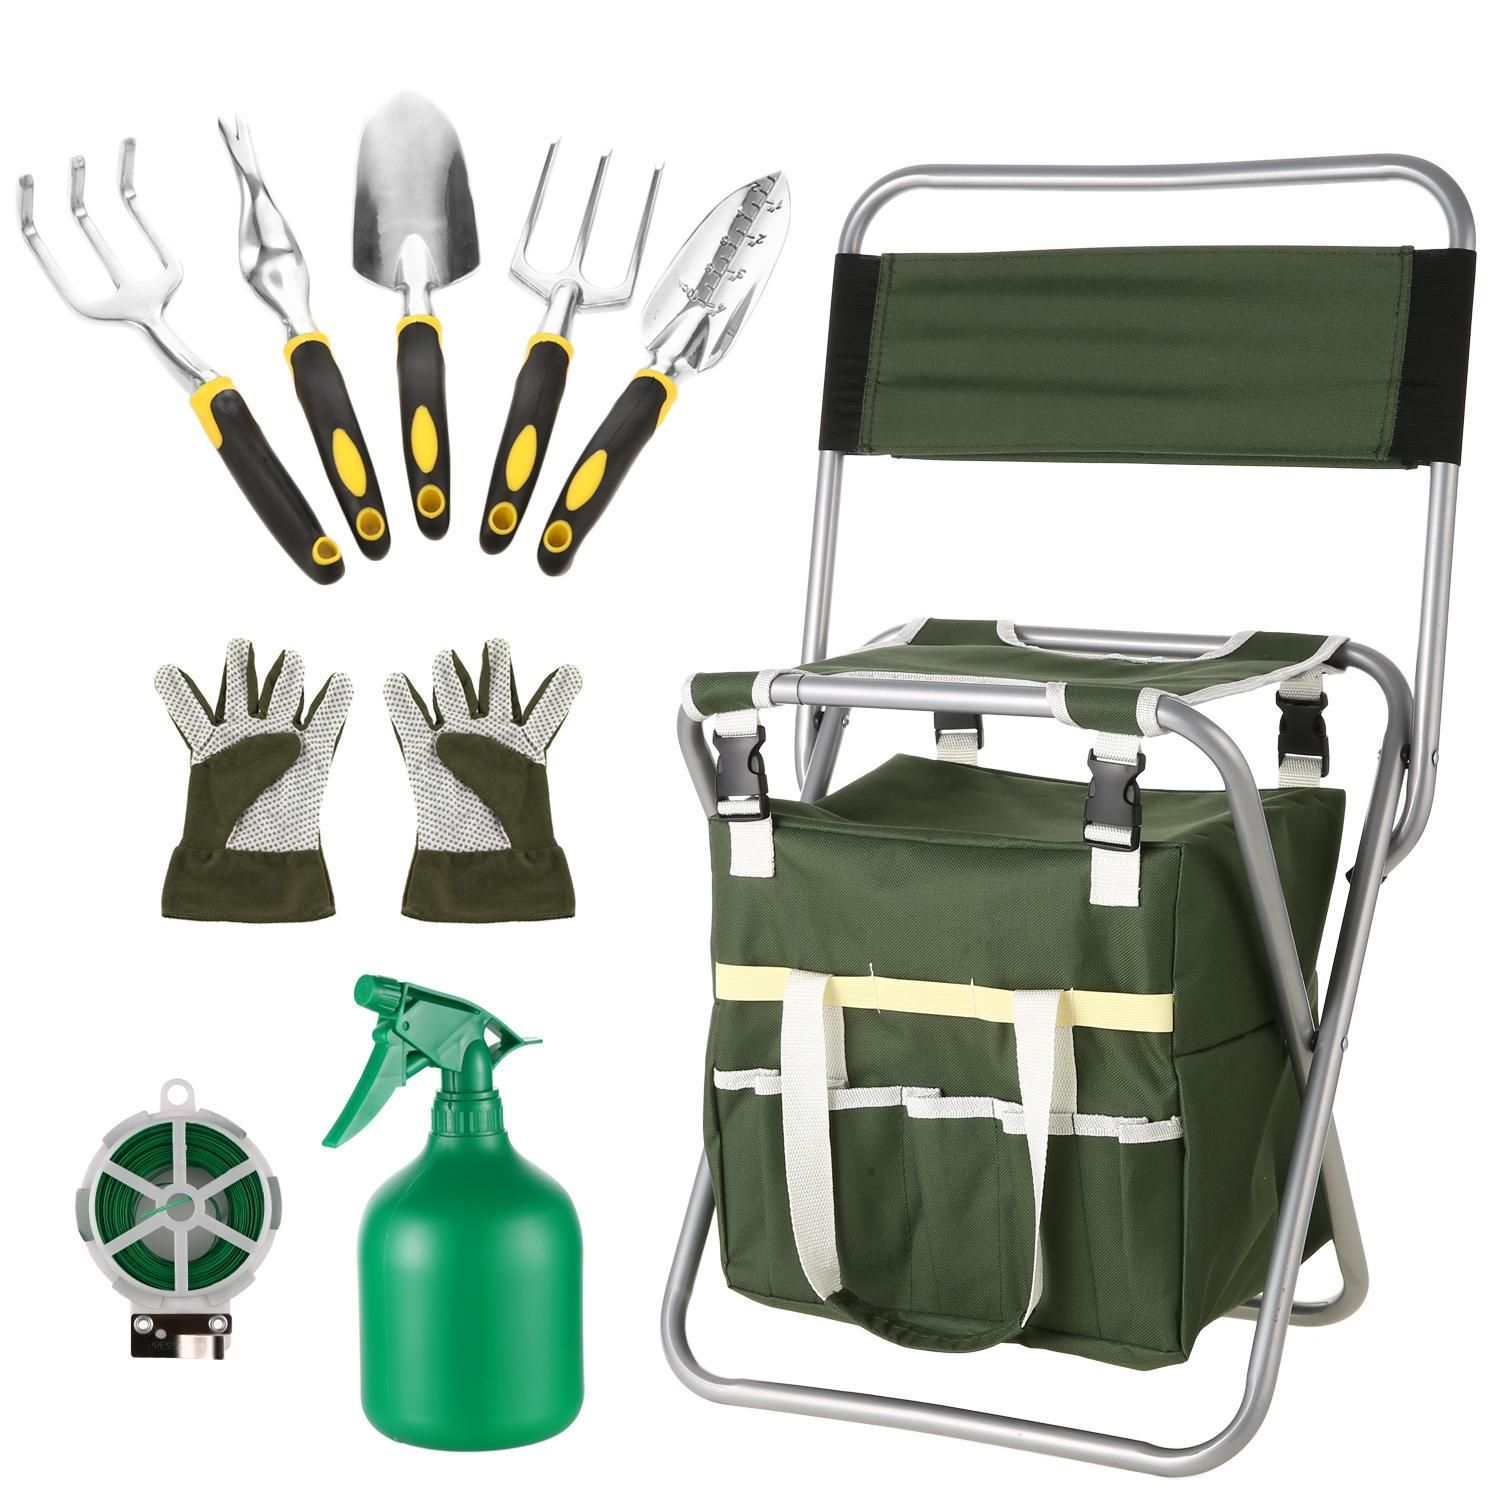 Recomeneded Kimimart Garden Tools Kit, 10 Piece Vegetable Herb Gardening Tool Set, Foldable Stool with Backrest and Zippered Detachable Tote is part of garden Kids Tools - Garden tools are conveniently stowed in the outside pockets to be near at han